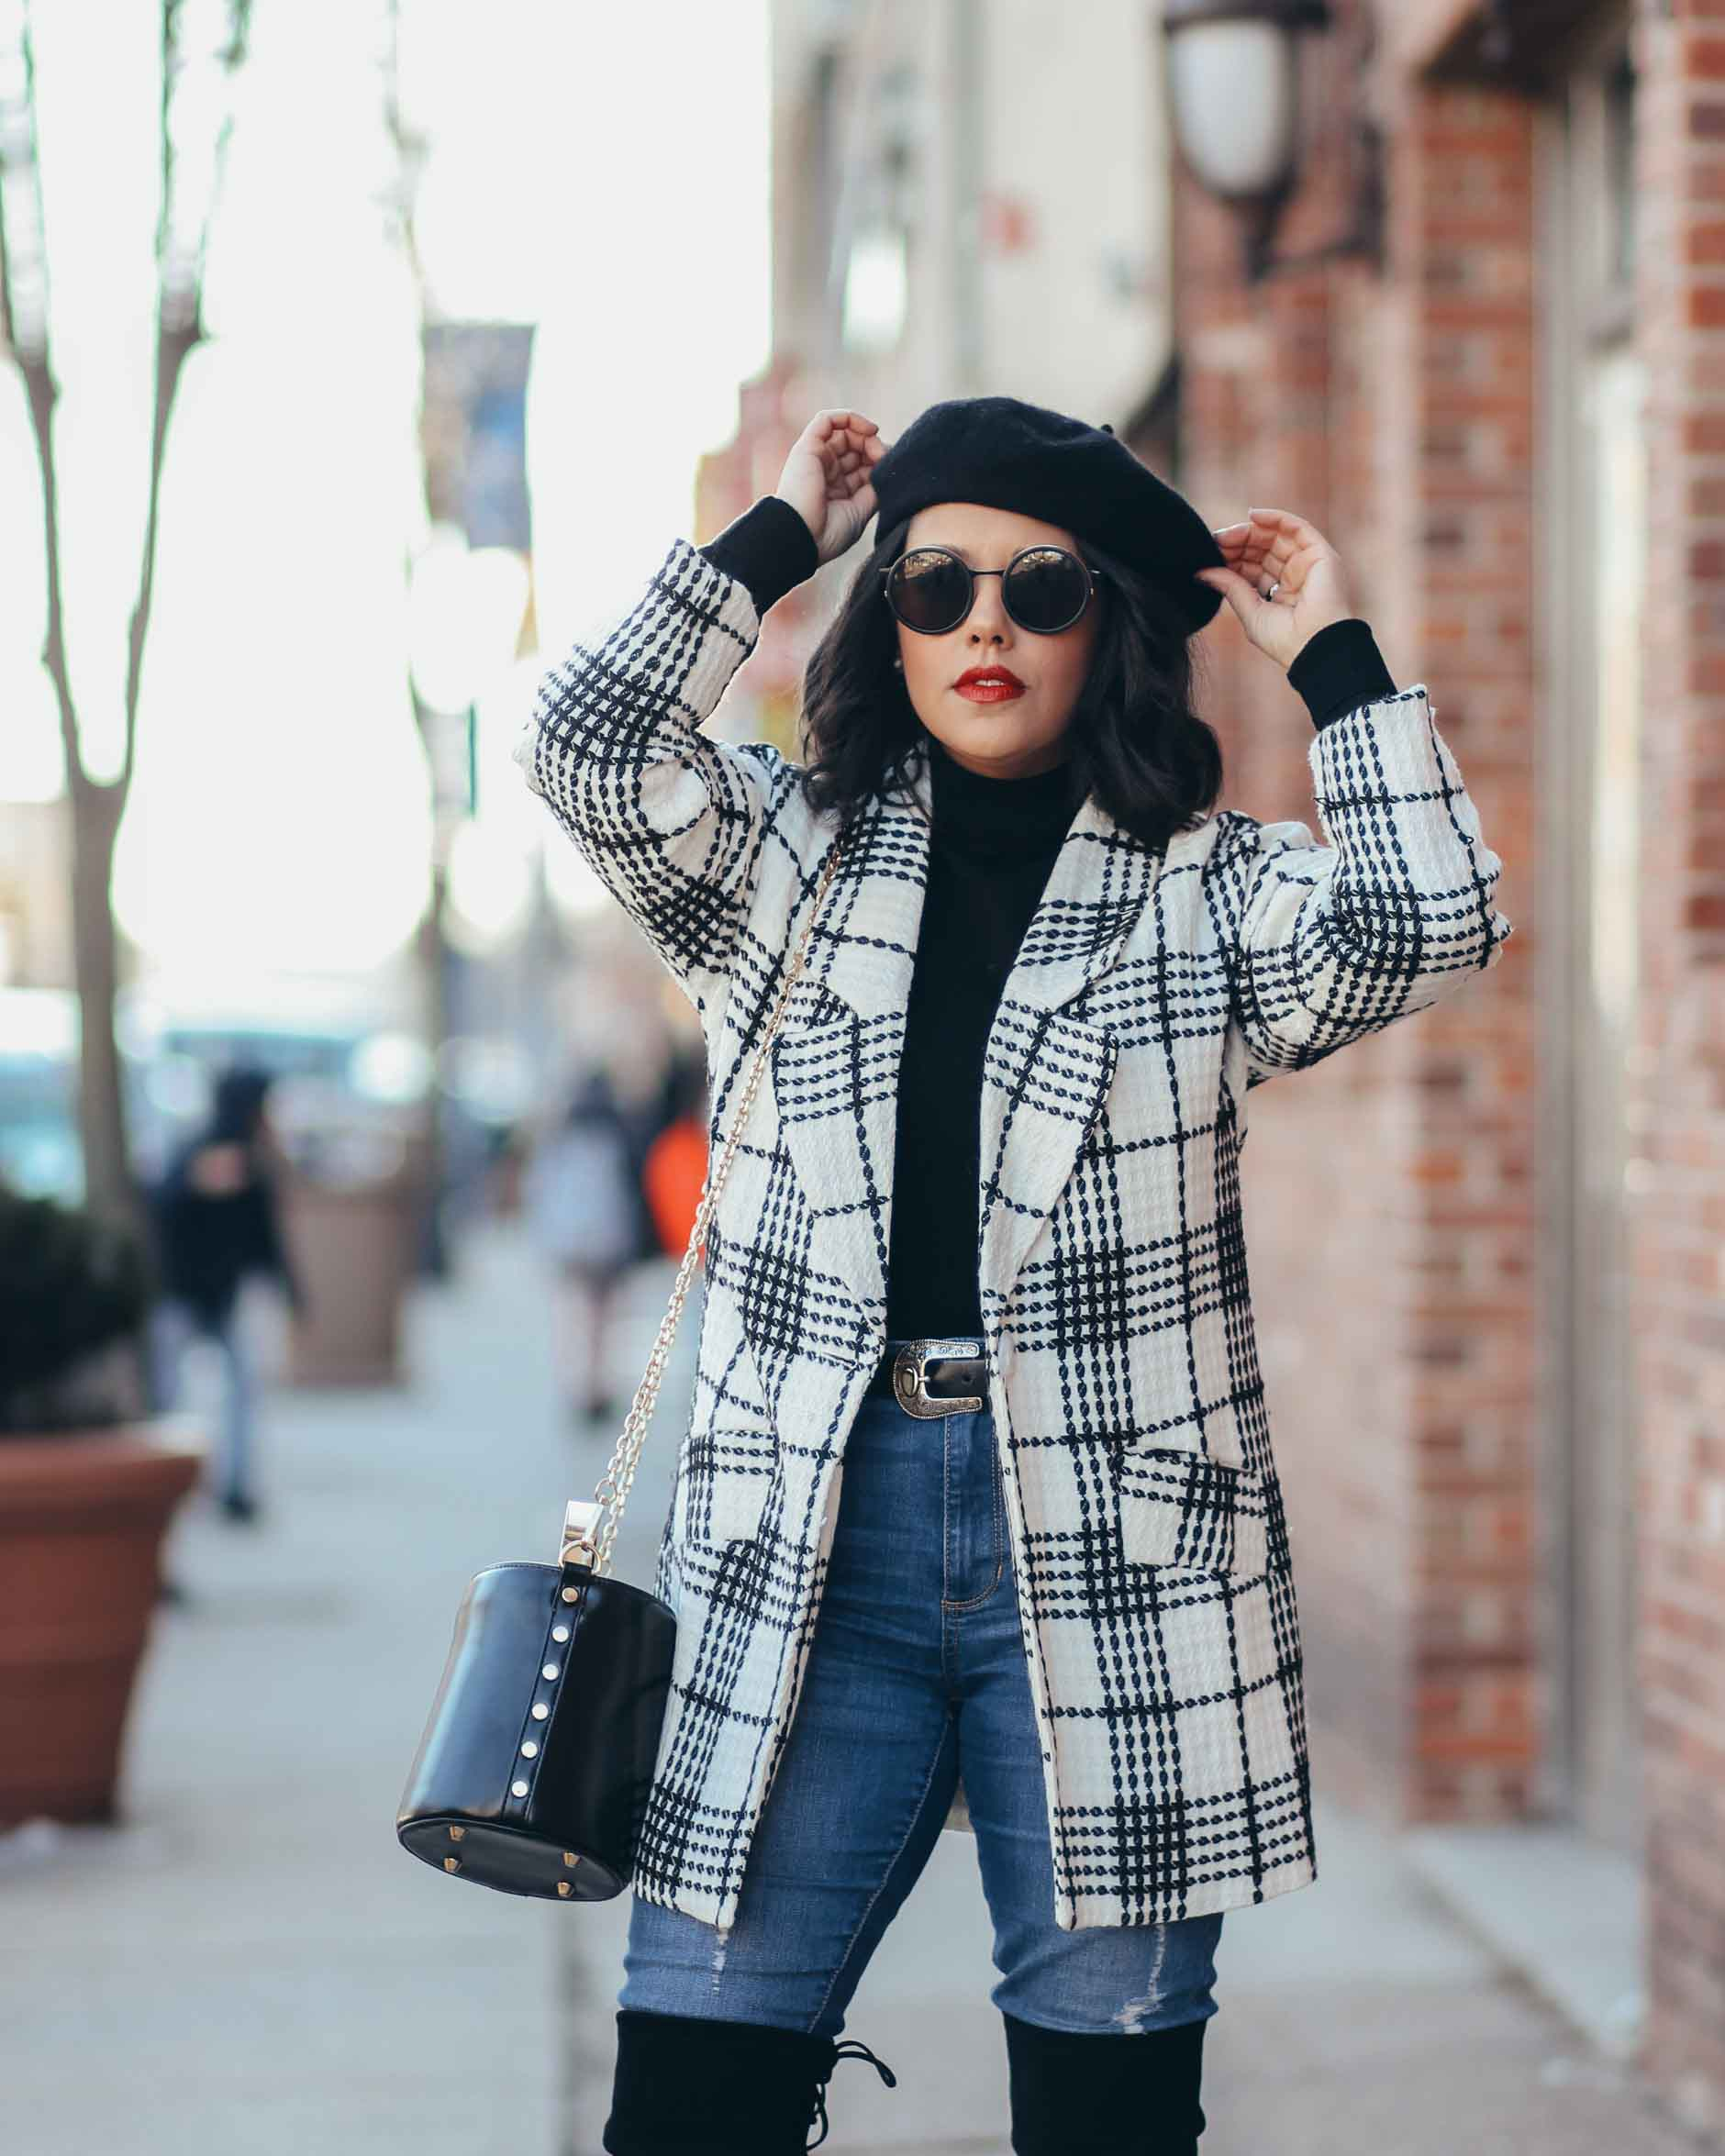 lifestyle blogger naty michele wearing a beret with a black and white coat and otk boots